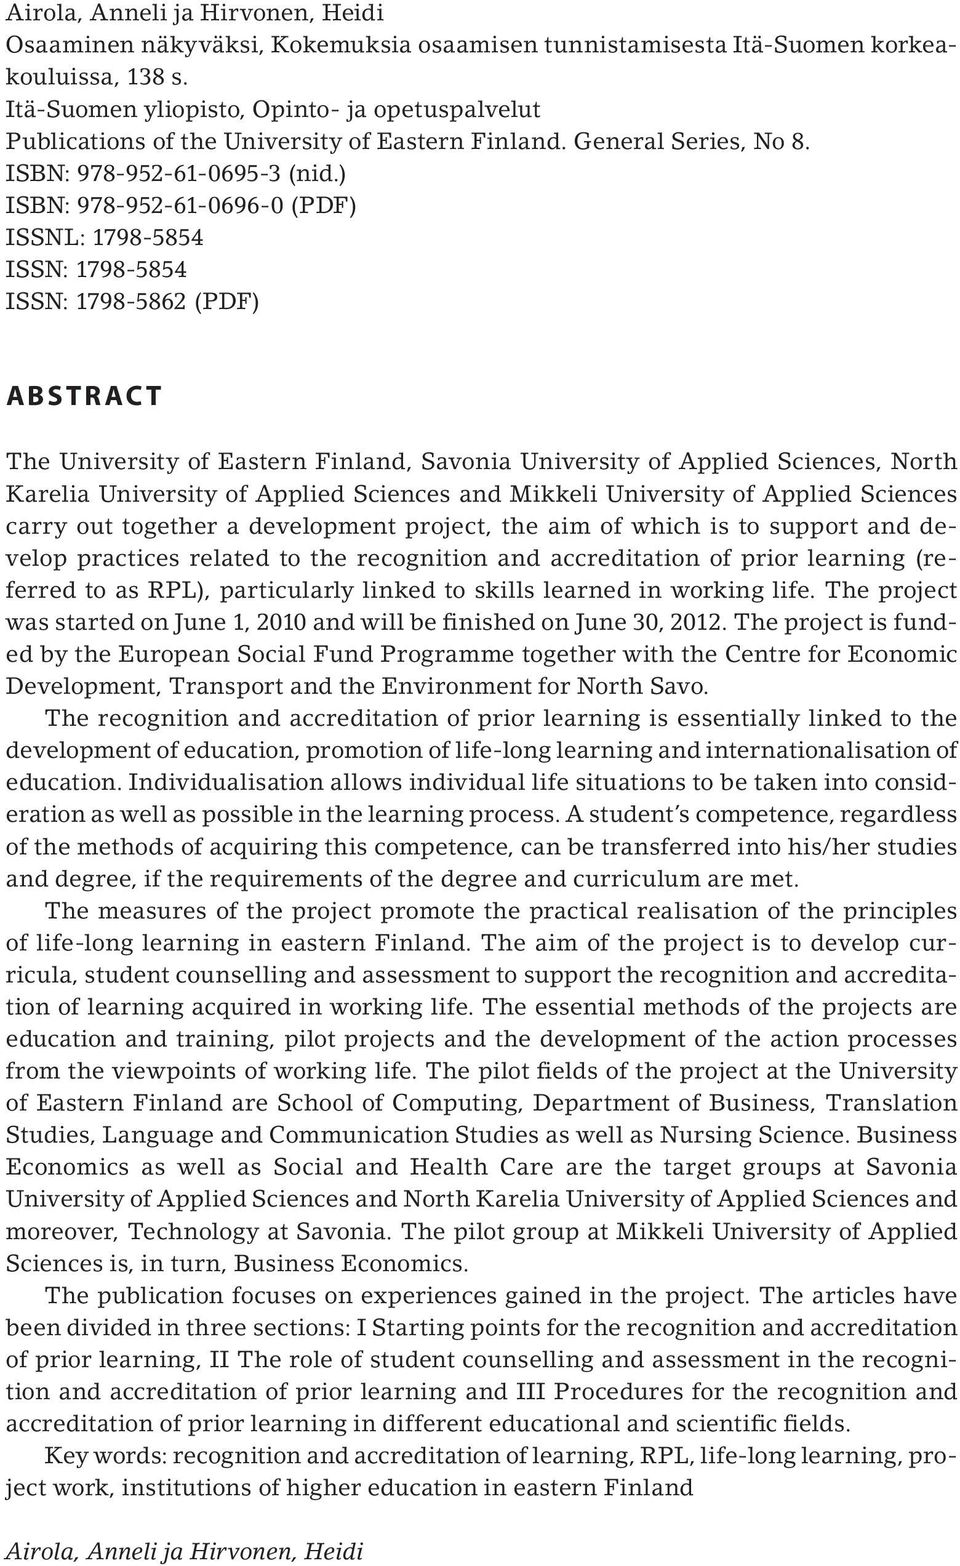 ) ISBN: 978-952-61-0696-0 (PDF) ISSNL: 1798-5854 ISSN: 1798-5854 ISSN: 1798-5862 (PDF) ABSTRACT The University of Eastern Finland, Savonia University of Applied Sciences, North Karelia University of